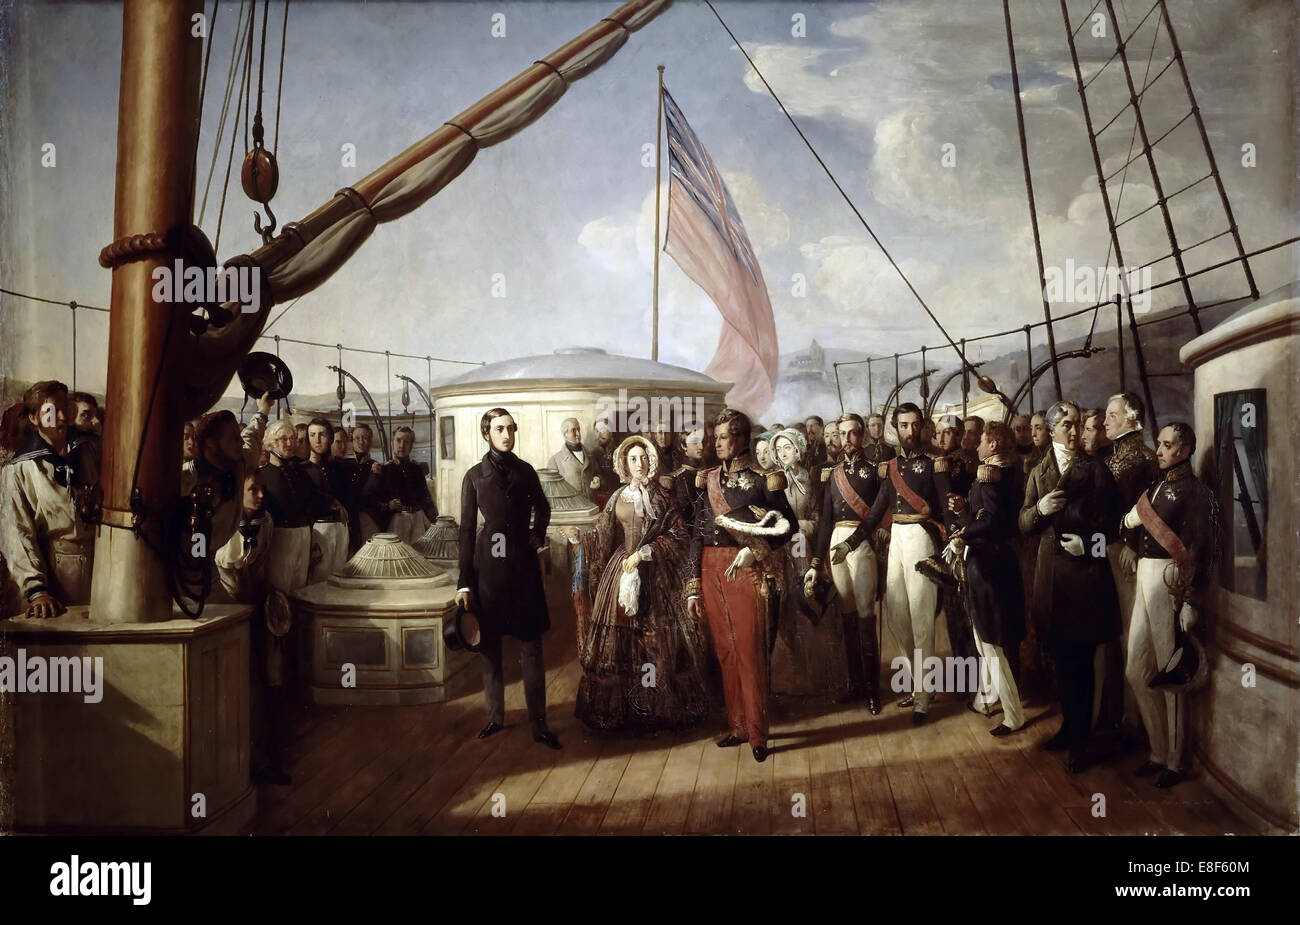 Queen Victoria recieved the King Louis Philippe I on board the Royal Yacht, 2 September 1843. Artist: Biard, François - Stock Image